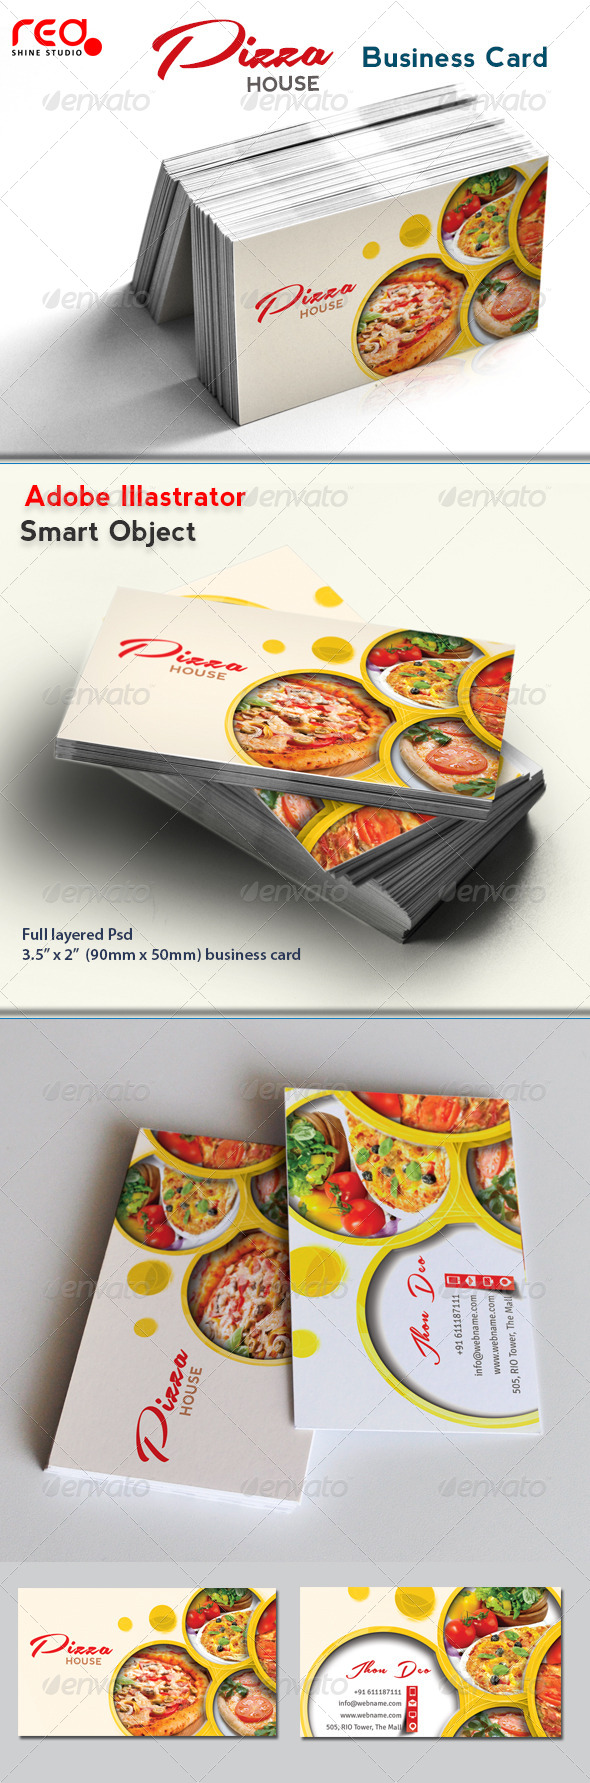 Restaurant business card by redshinestudio graphicriver restaurant business card cheaphphosting Choice Image